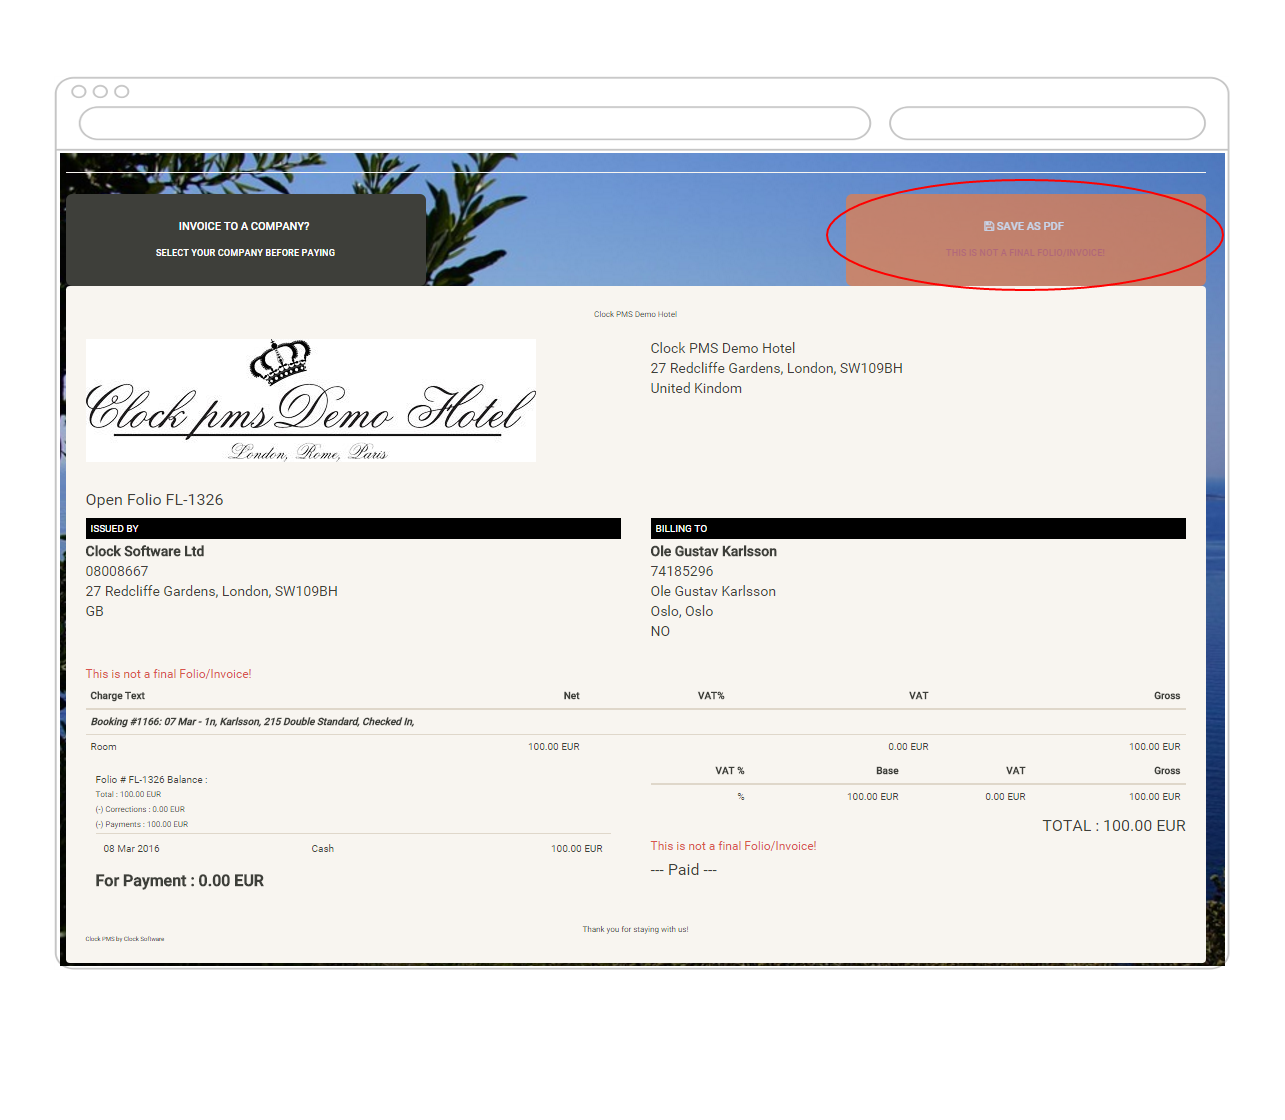 Invoice preparation before self checkout from hotel with Clock PMS